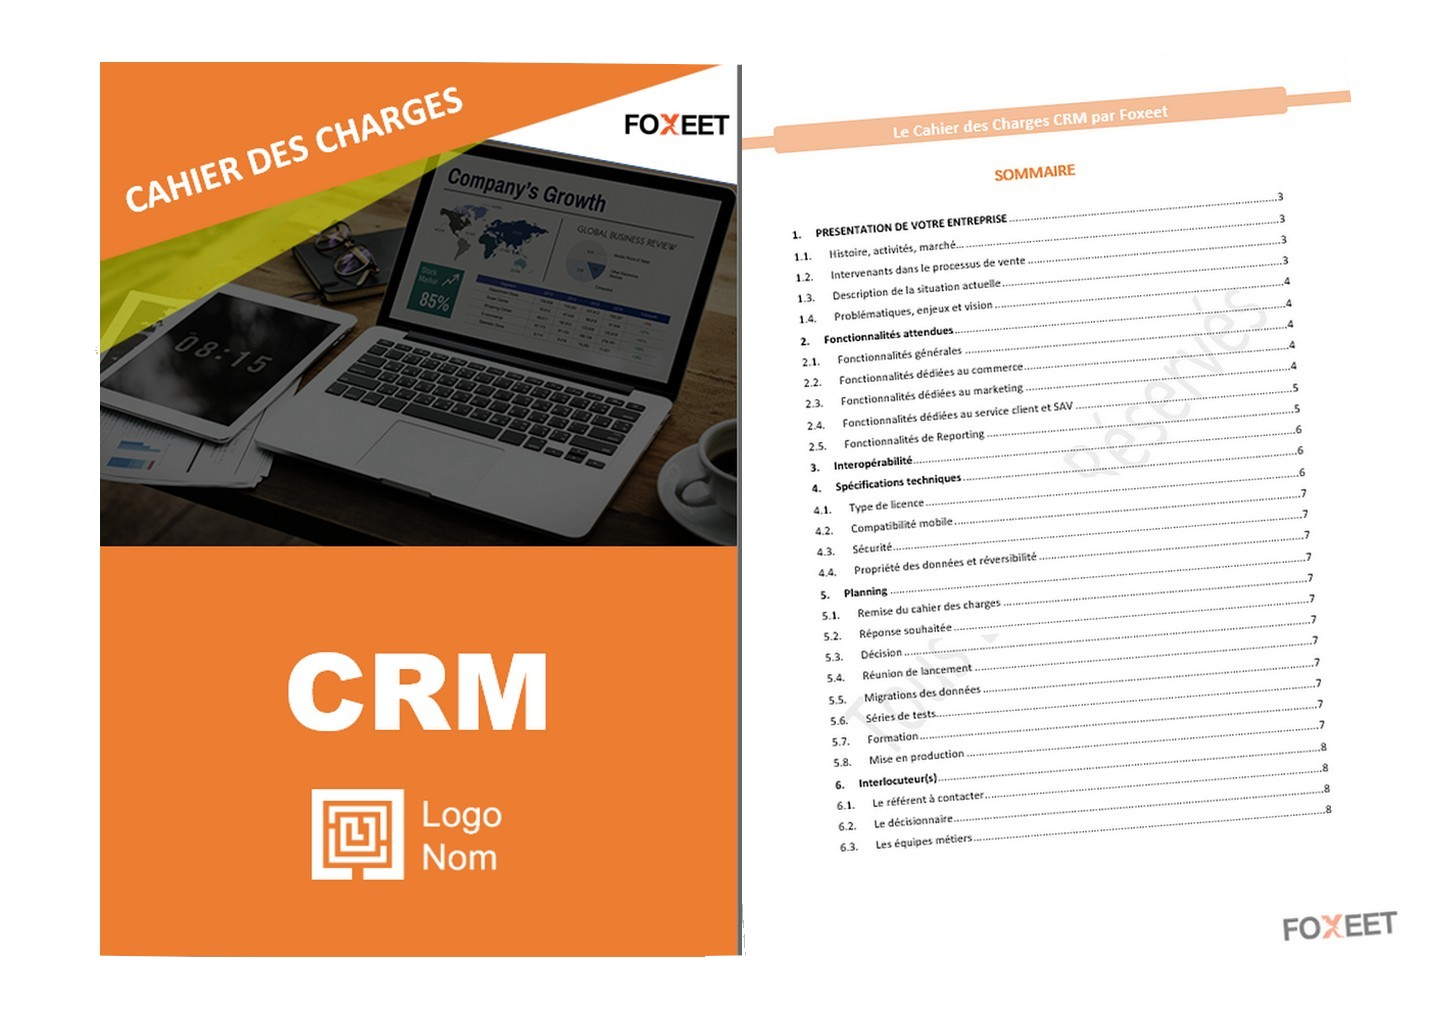 exemple cahier des charges CRM